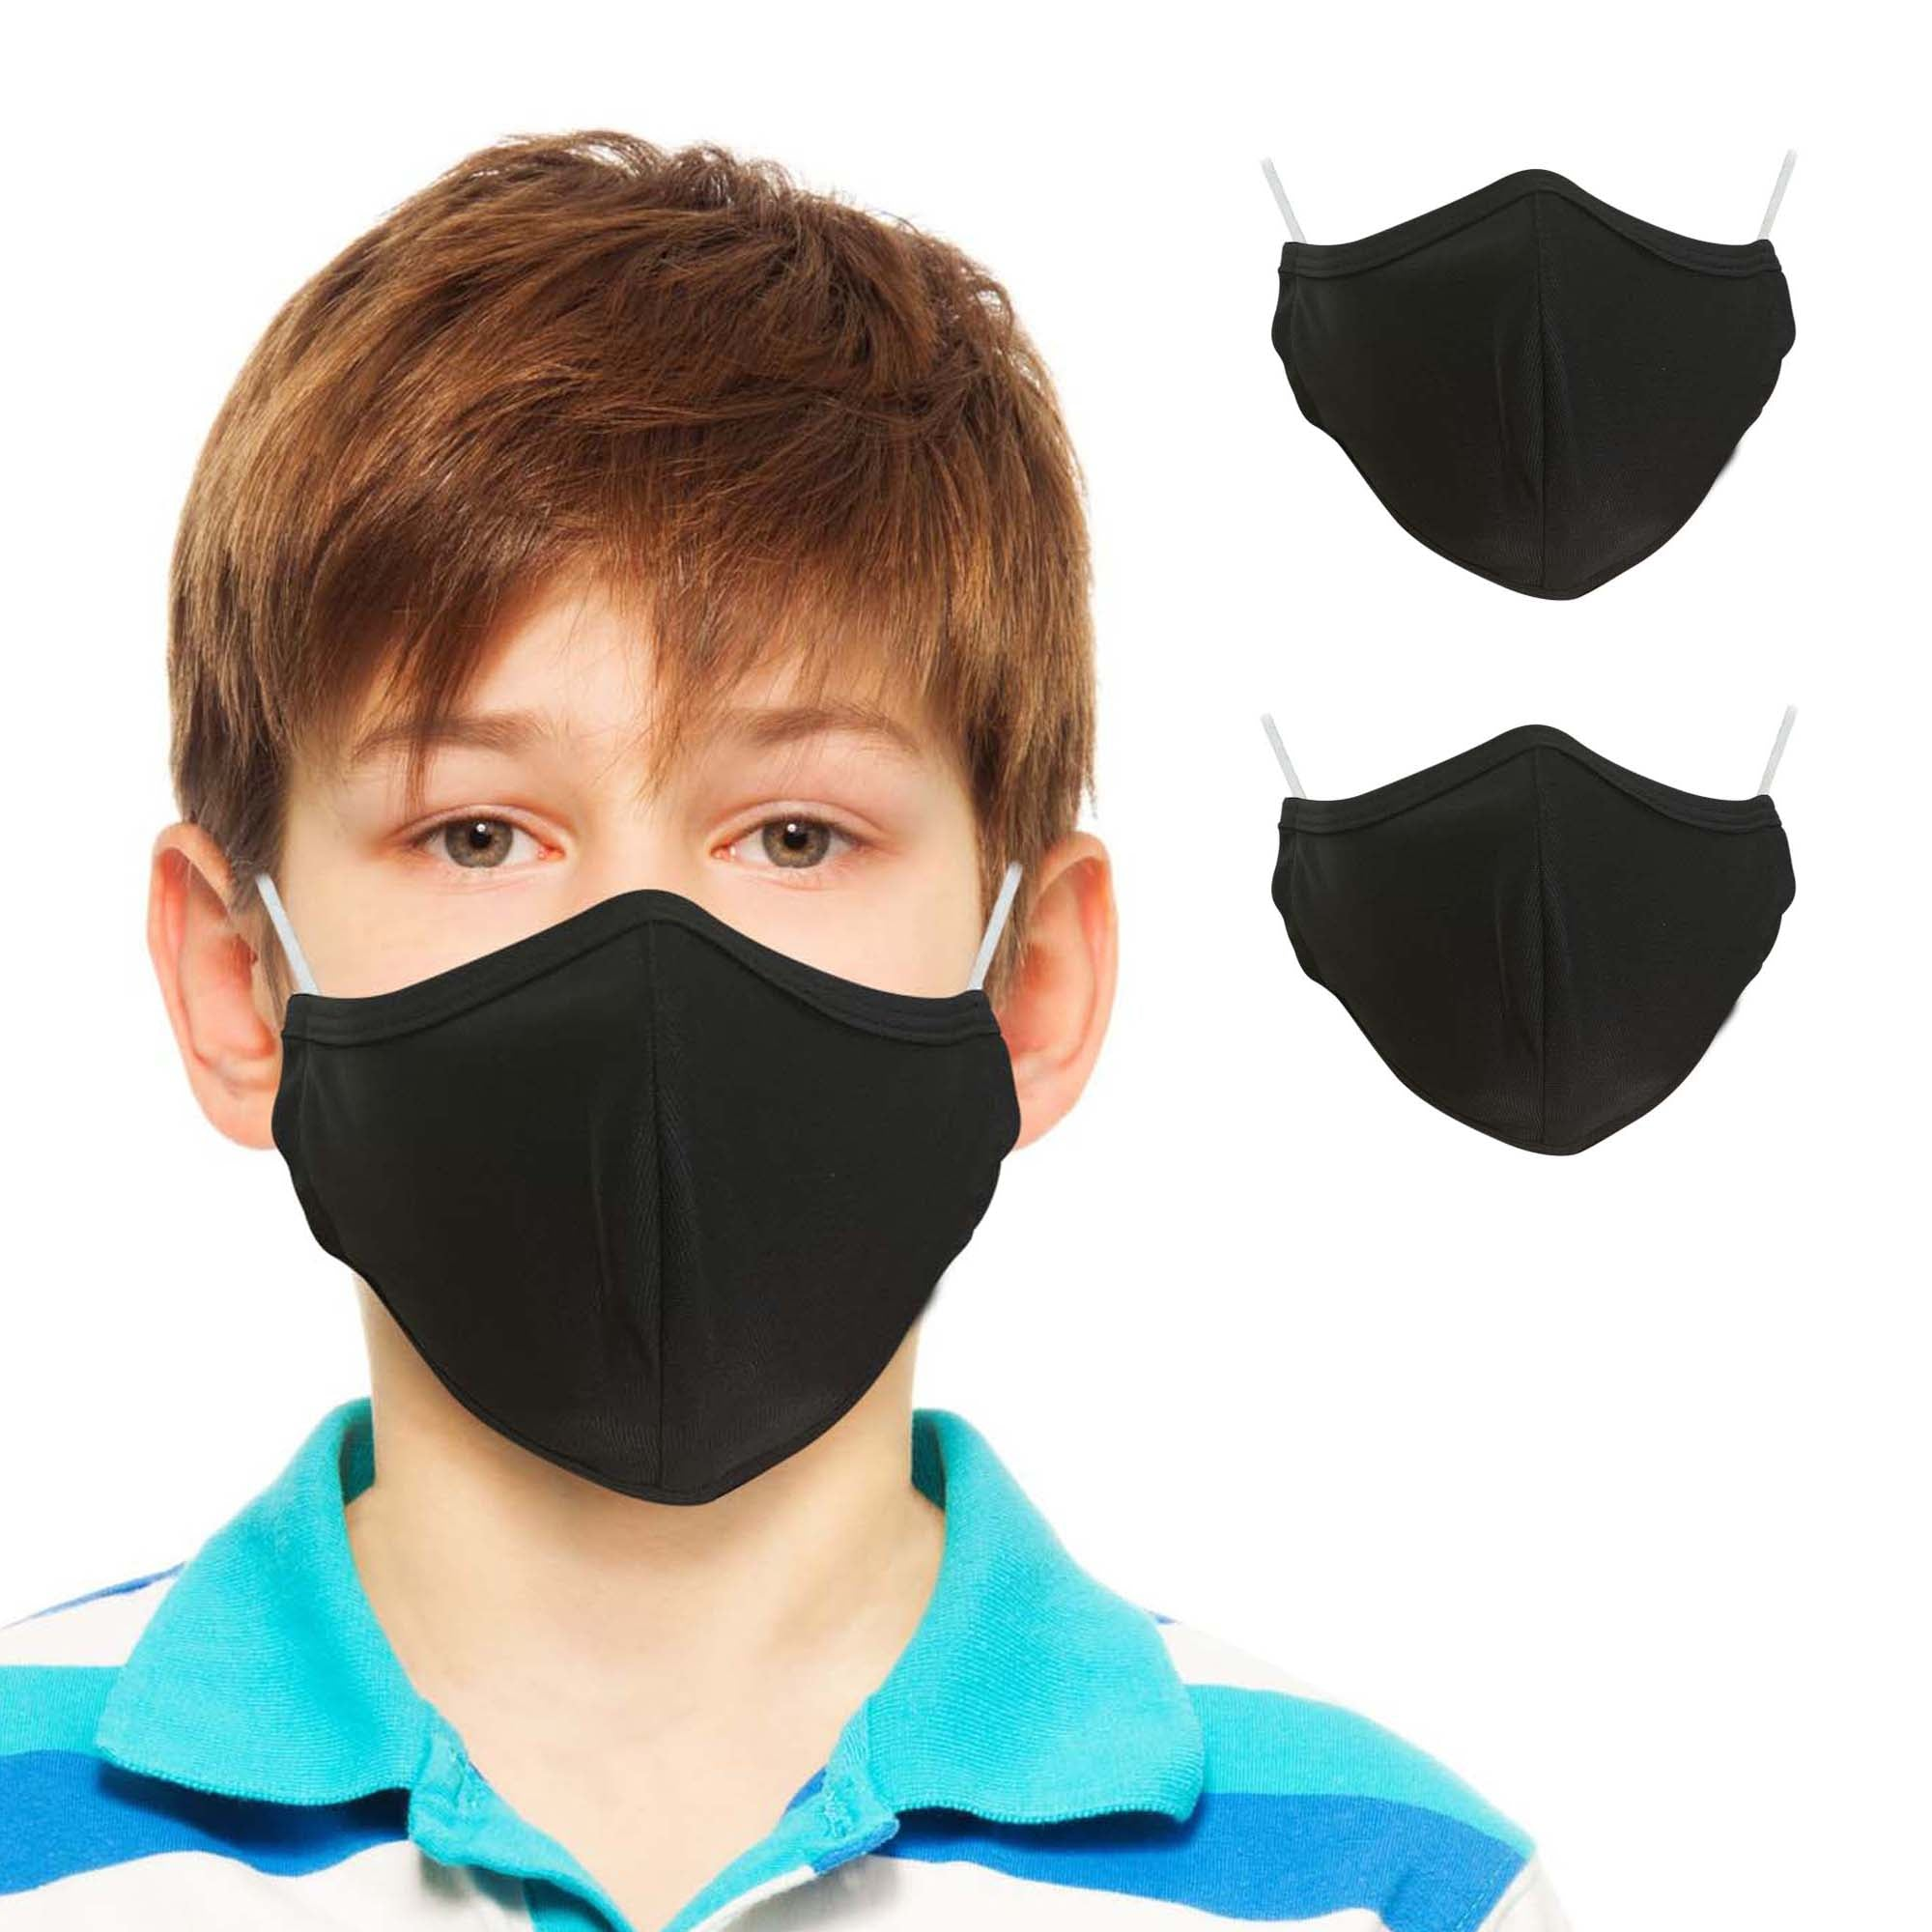 Fun & Cheery Plain Face Masks for Kids - primewareinc